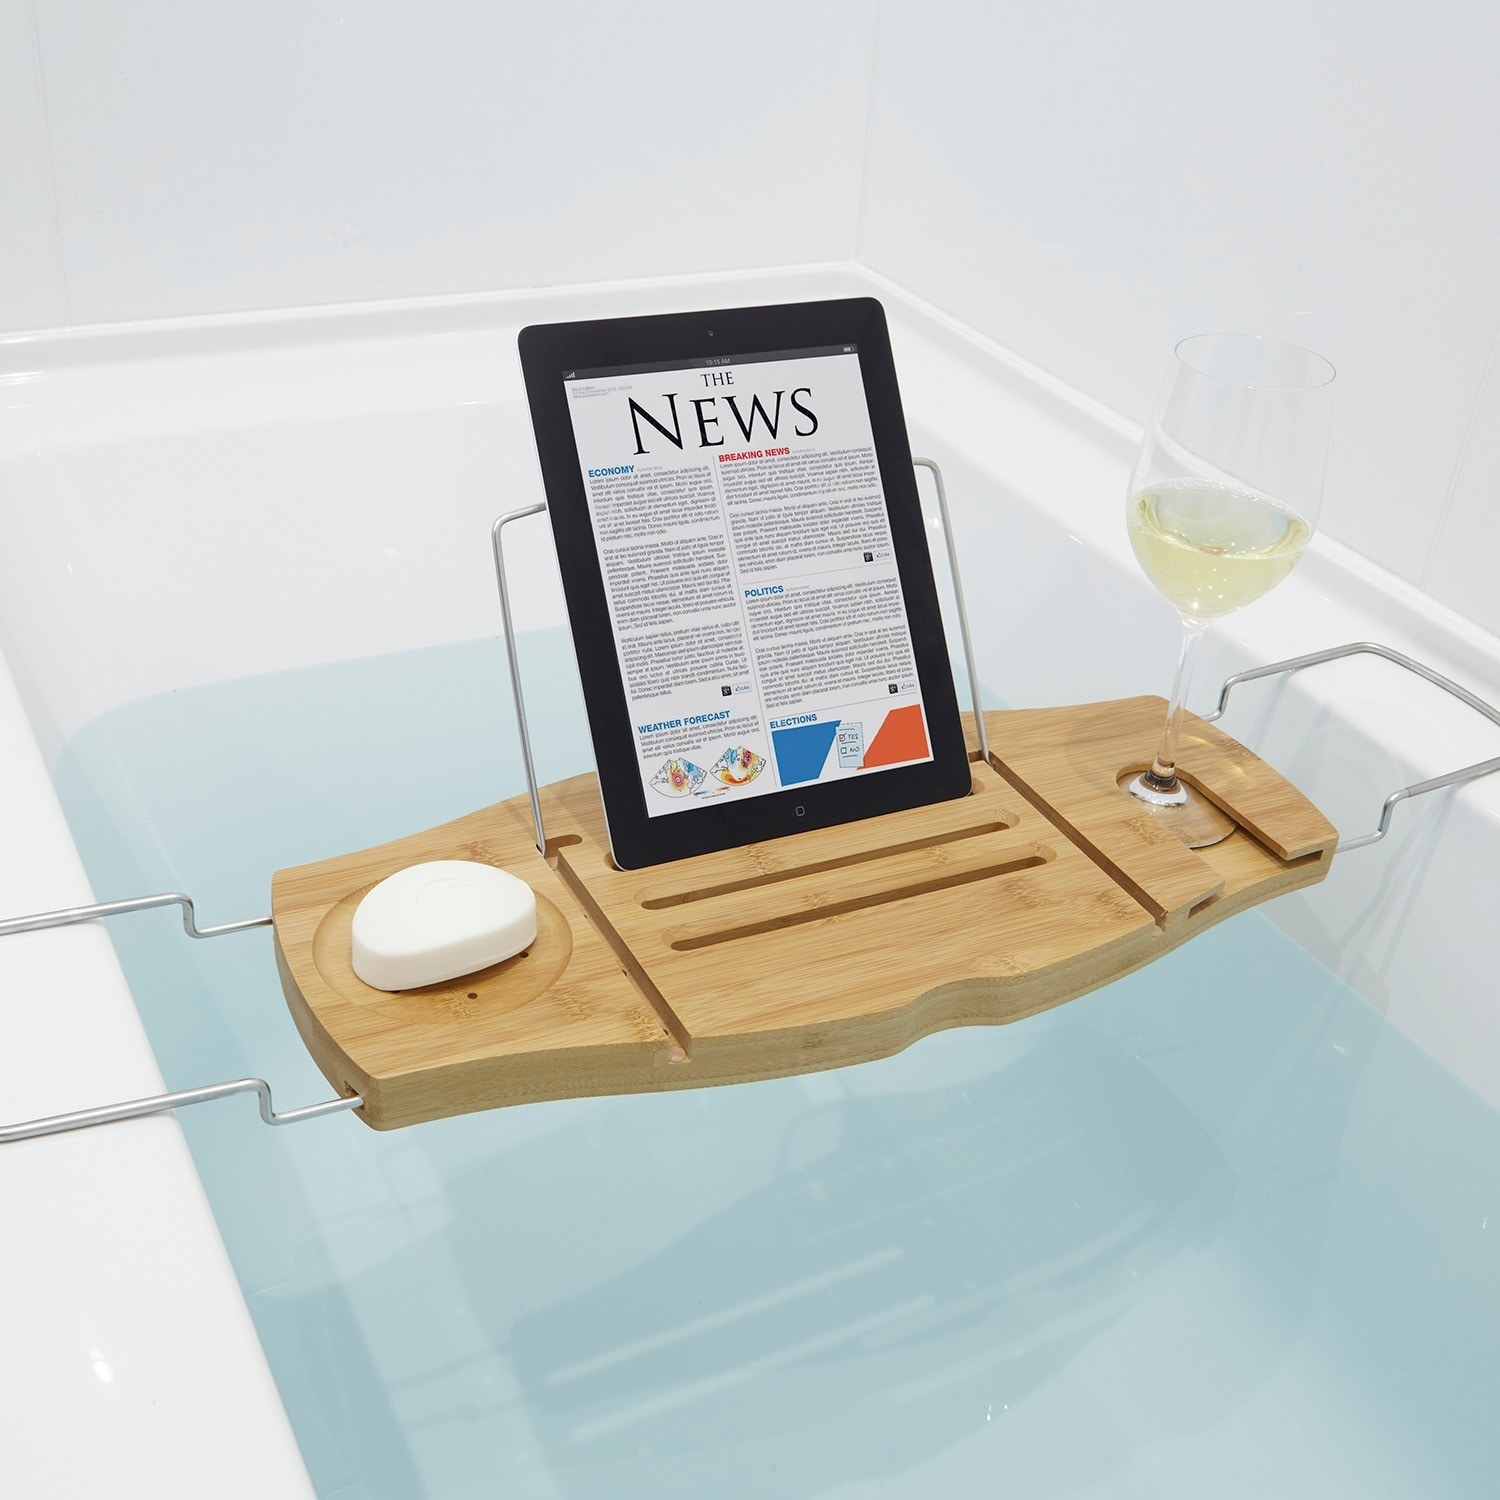 dish sponge slip non bathtub bath extending htm p tray caddy wide with product sides grip ybmhome soap white accessories glass holder shower wine